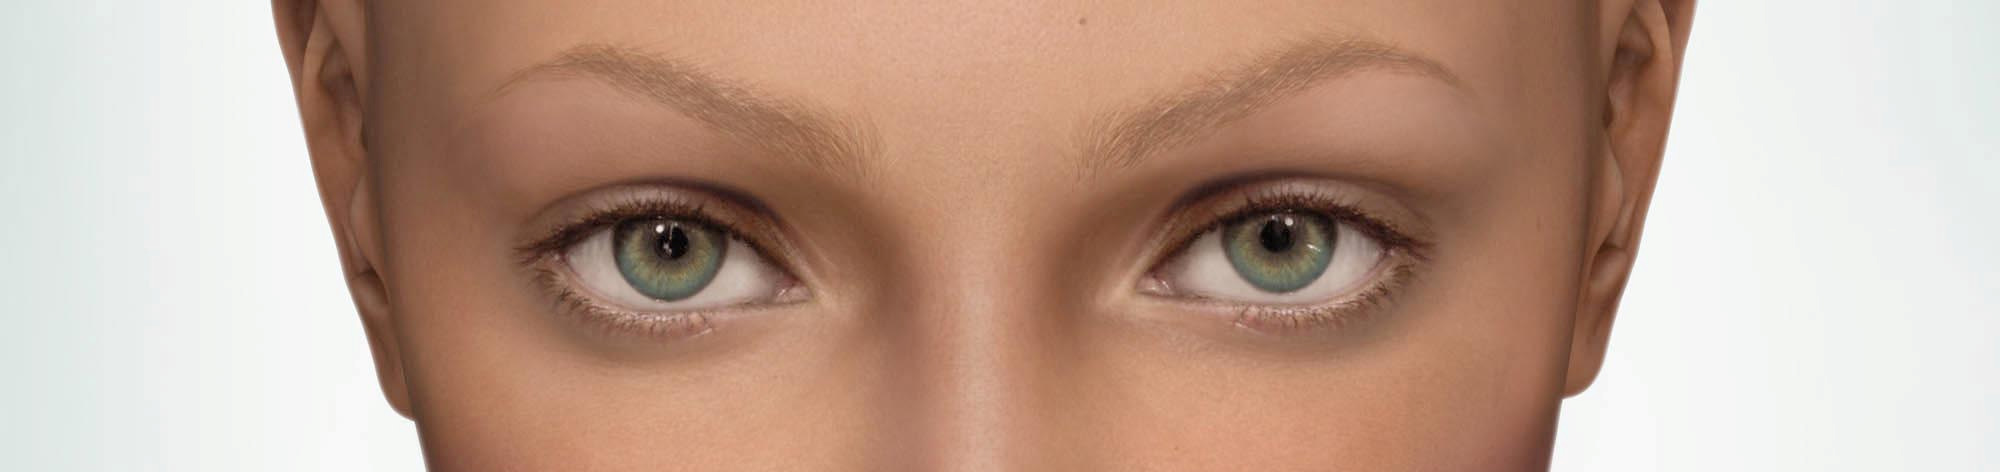 Maya is the first virtual beauty to be created solely by the computer an artificial body which is oriented to human ideals of beauty, yet comes into being entirely virtual, without being created from